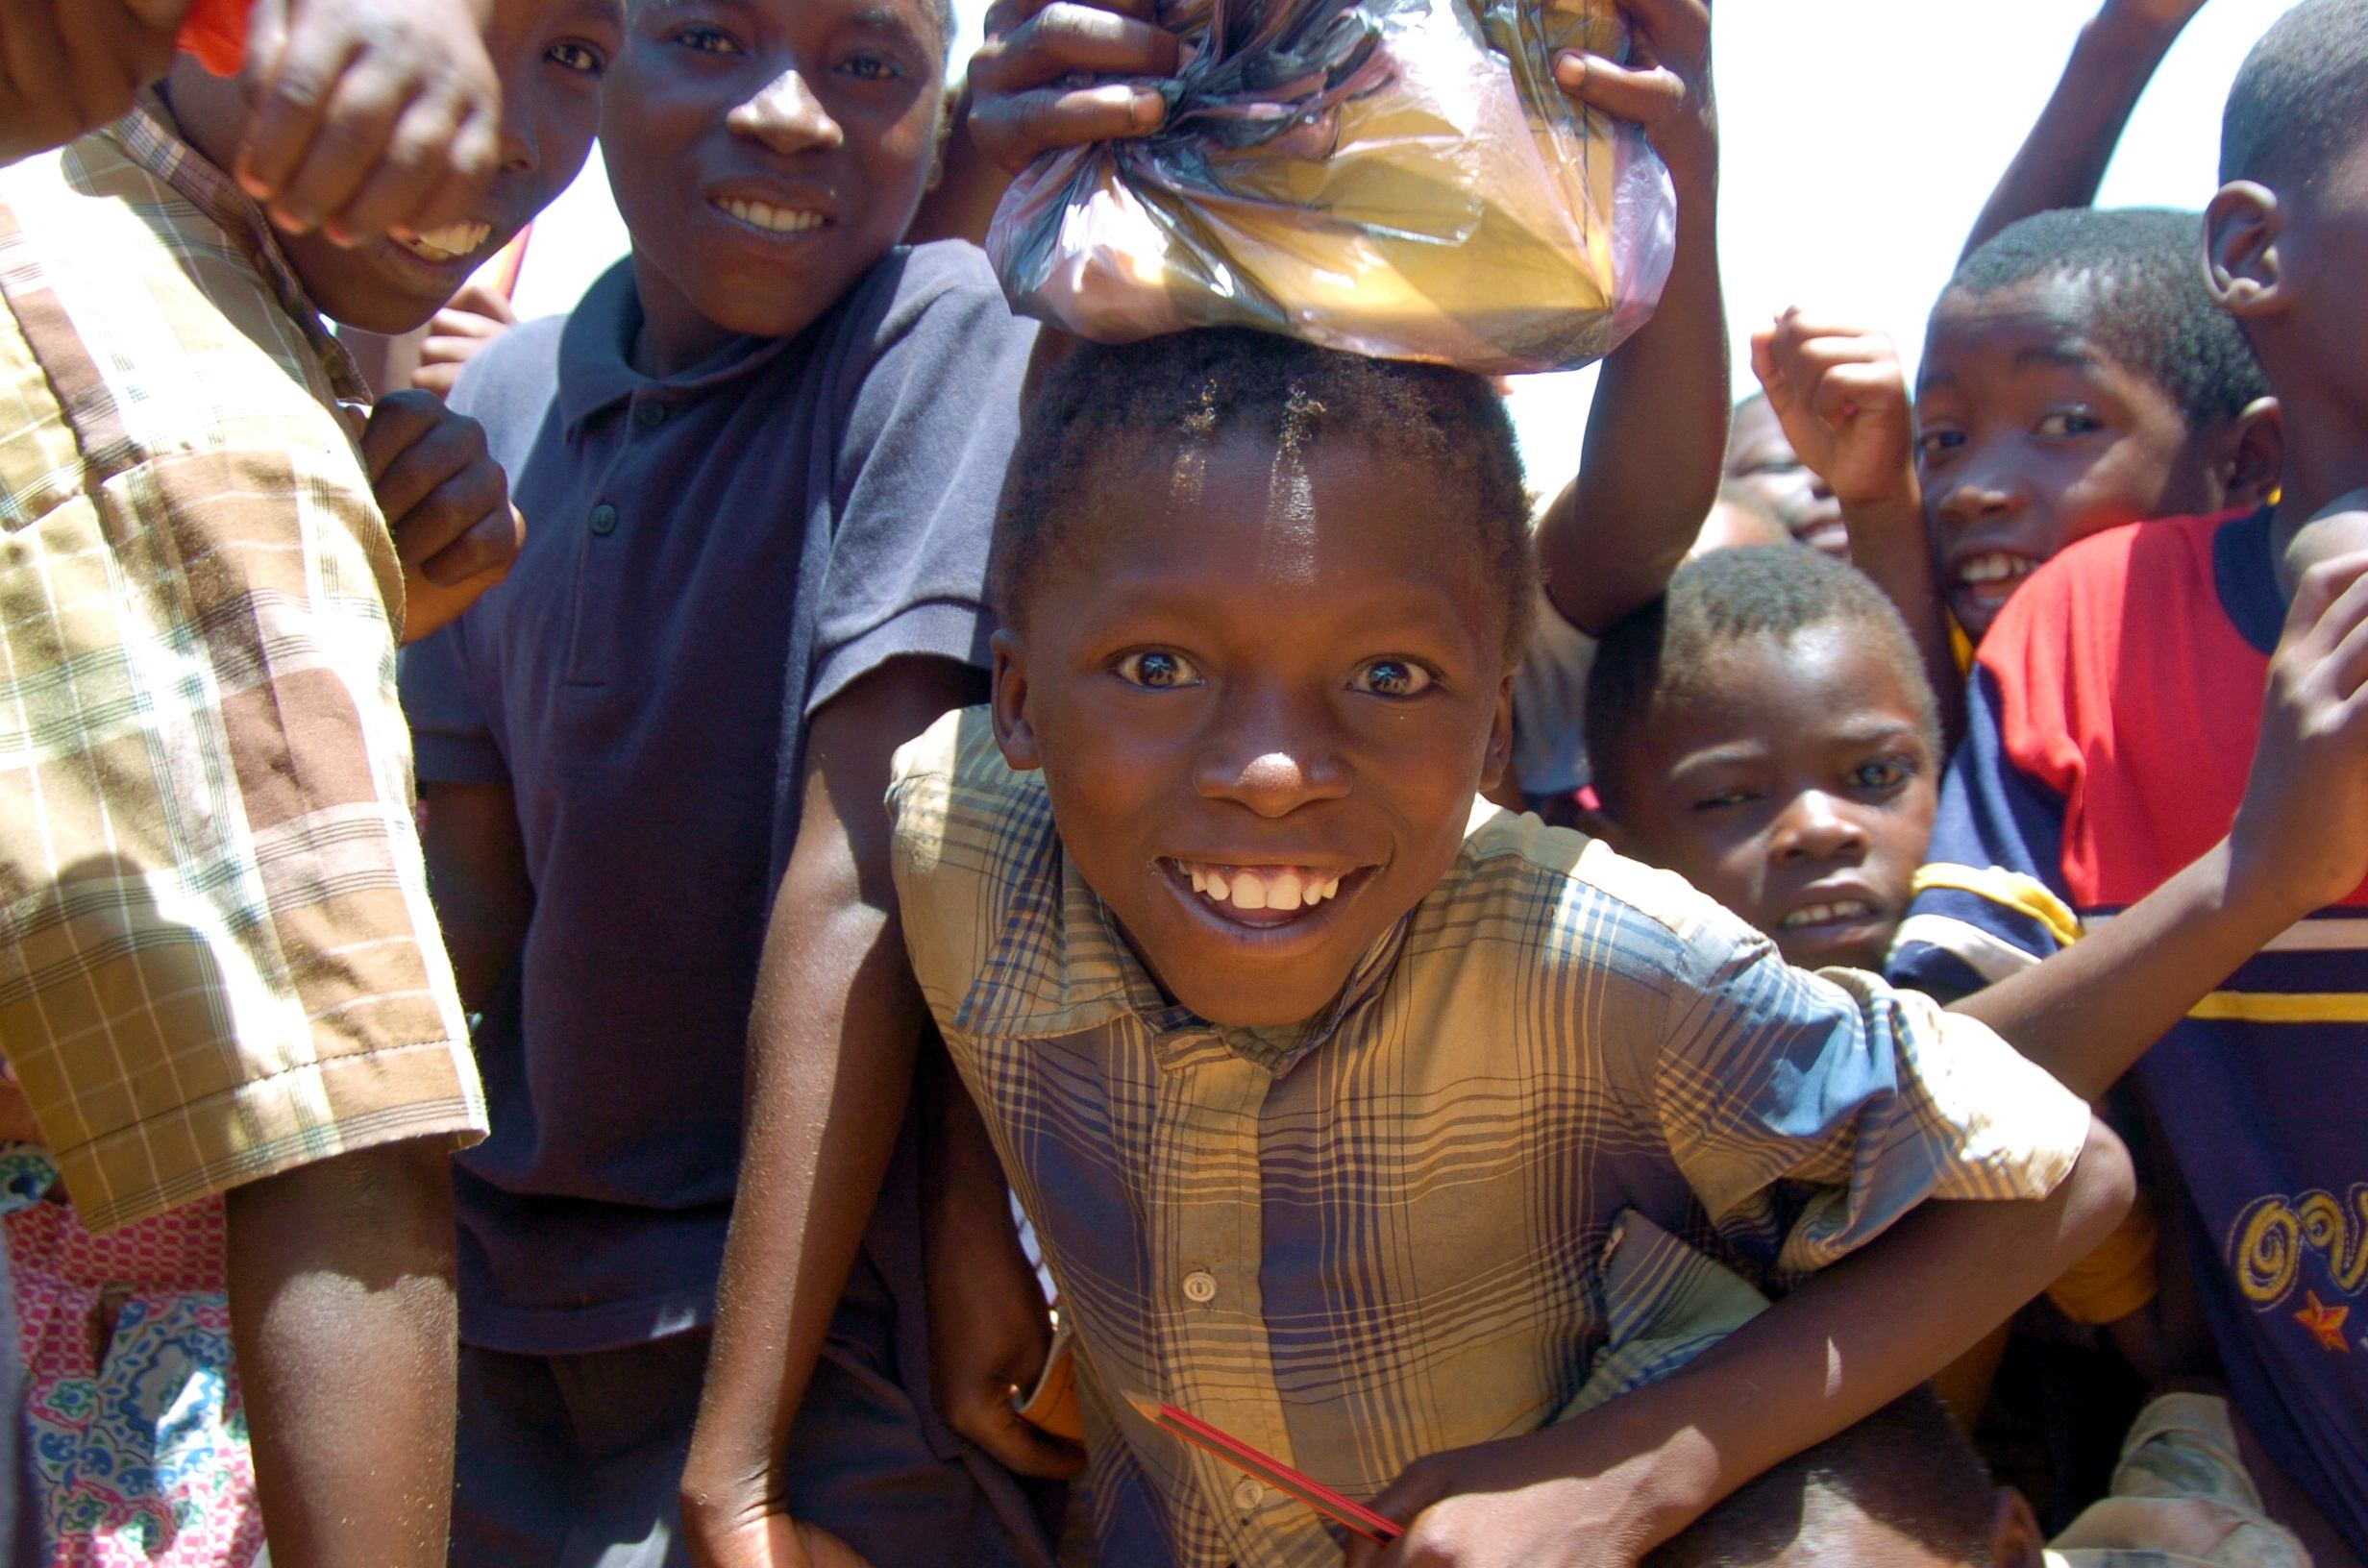 Children in Mozambique